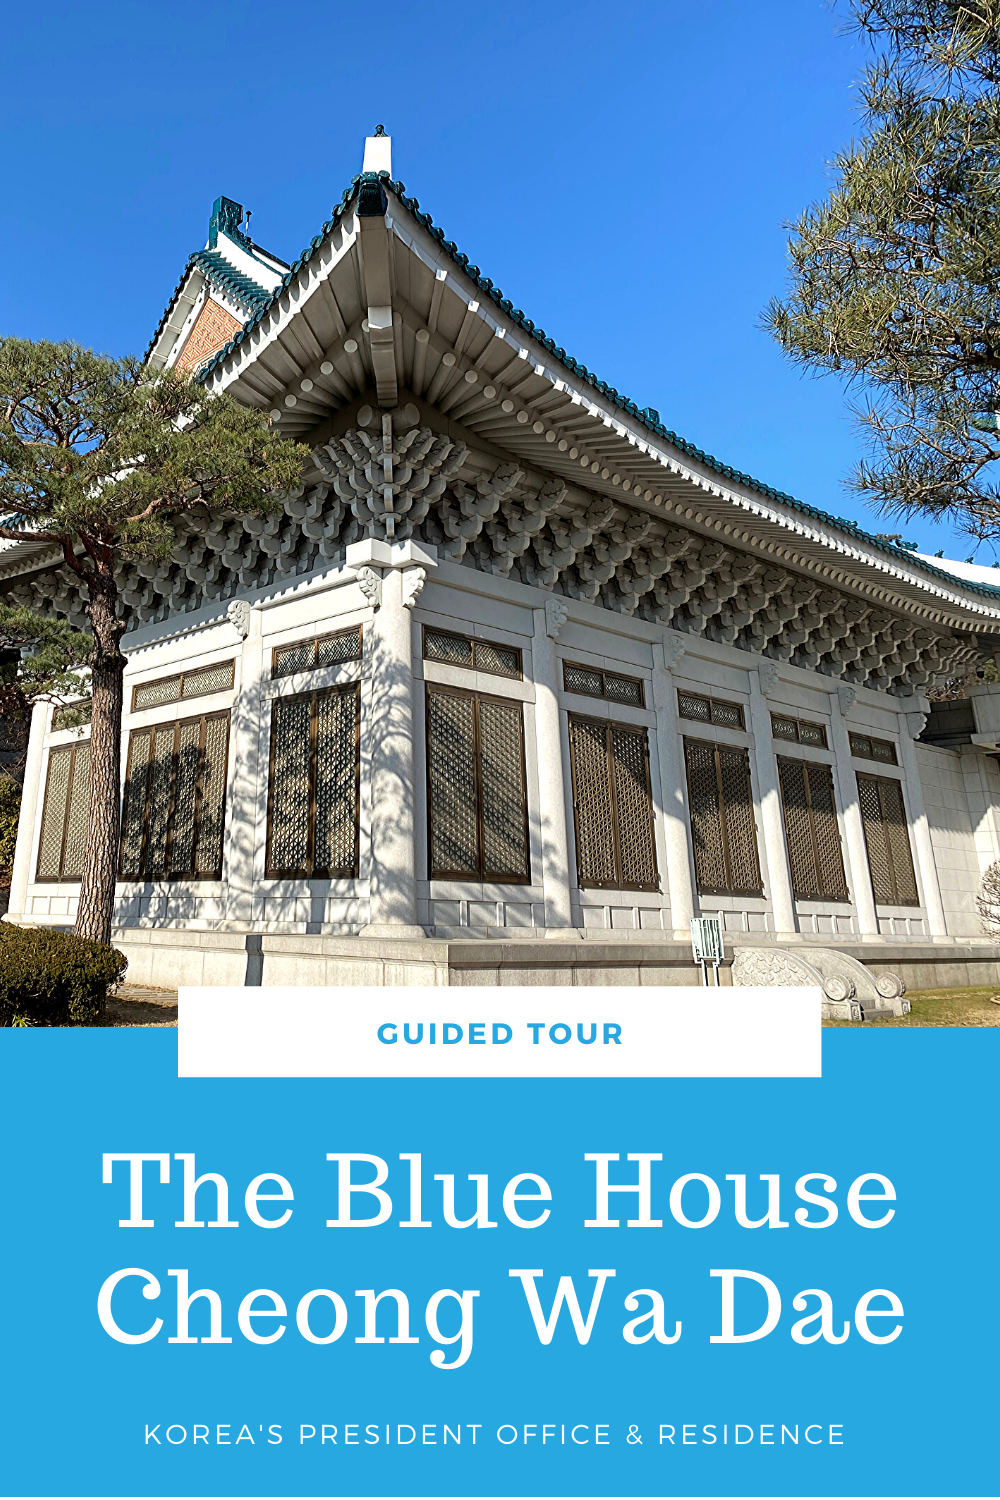 Guided Tour To South Korea S President Office Residence How To